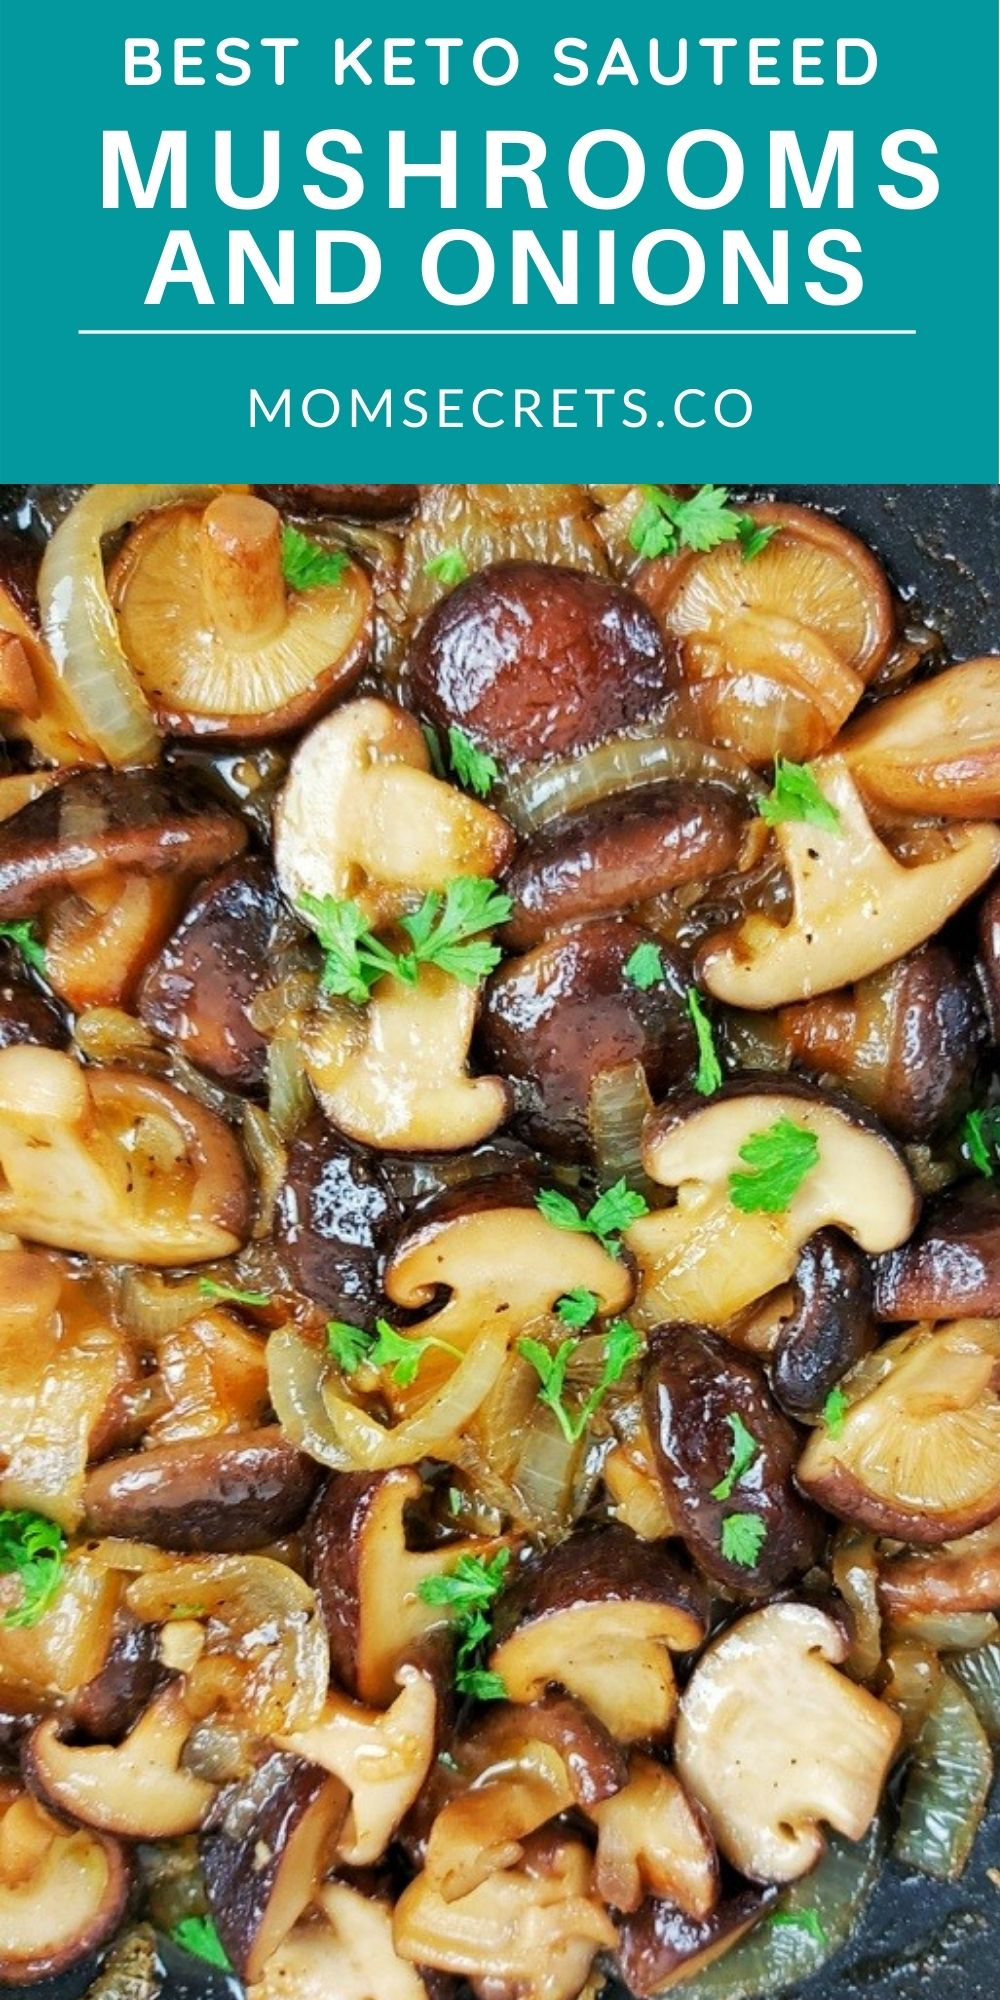 These Garlic Butter Mushrooms with onions are the PERFECT versatile keto side dish for steak, burgers, chicken or pork! They're ready in just 20 minutes!!